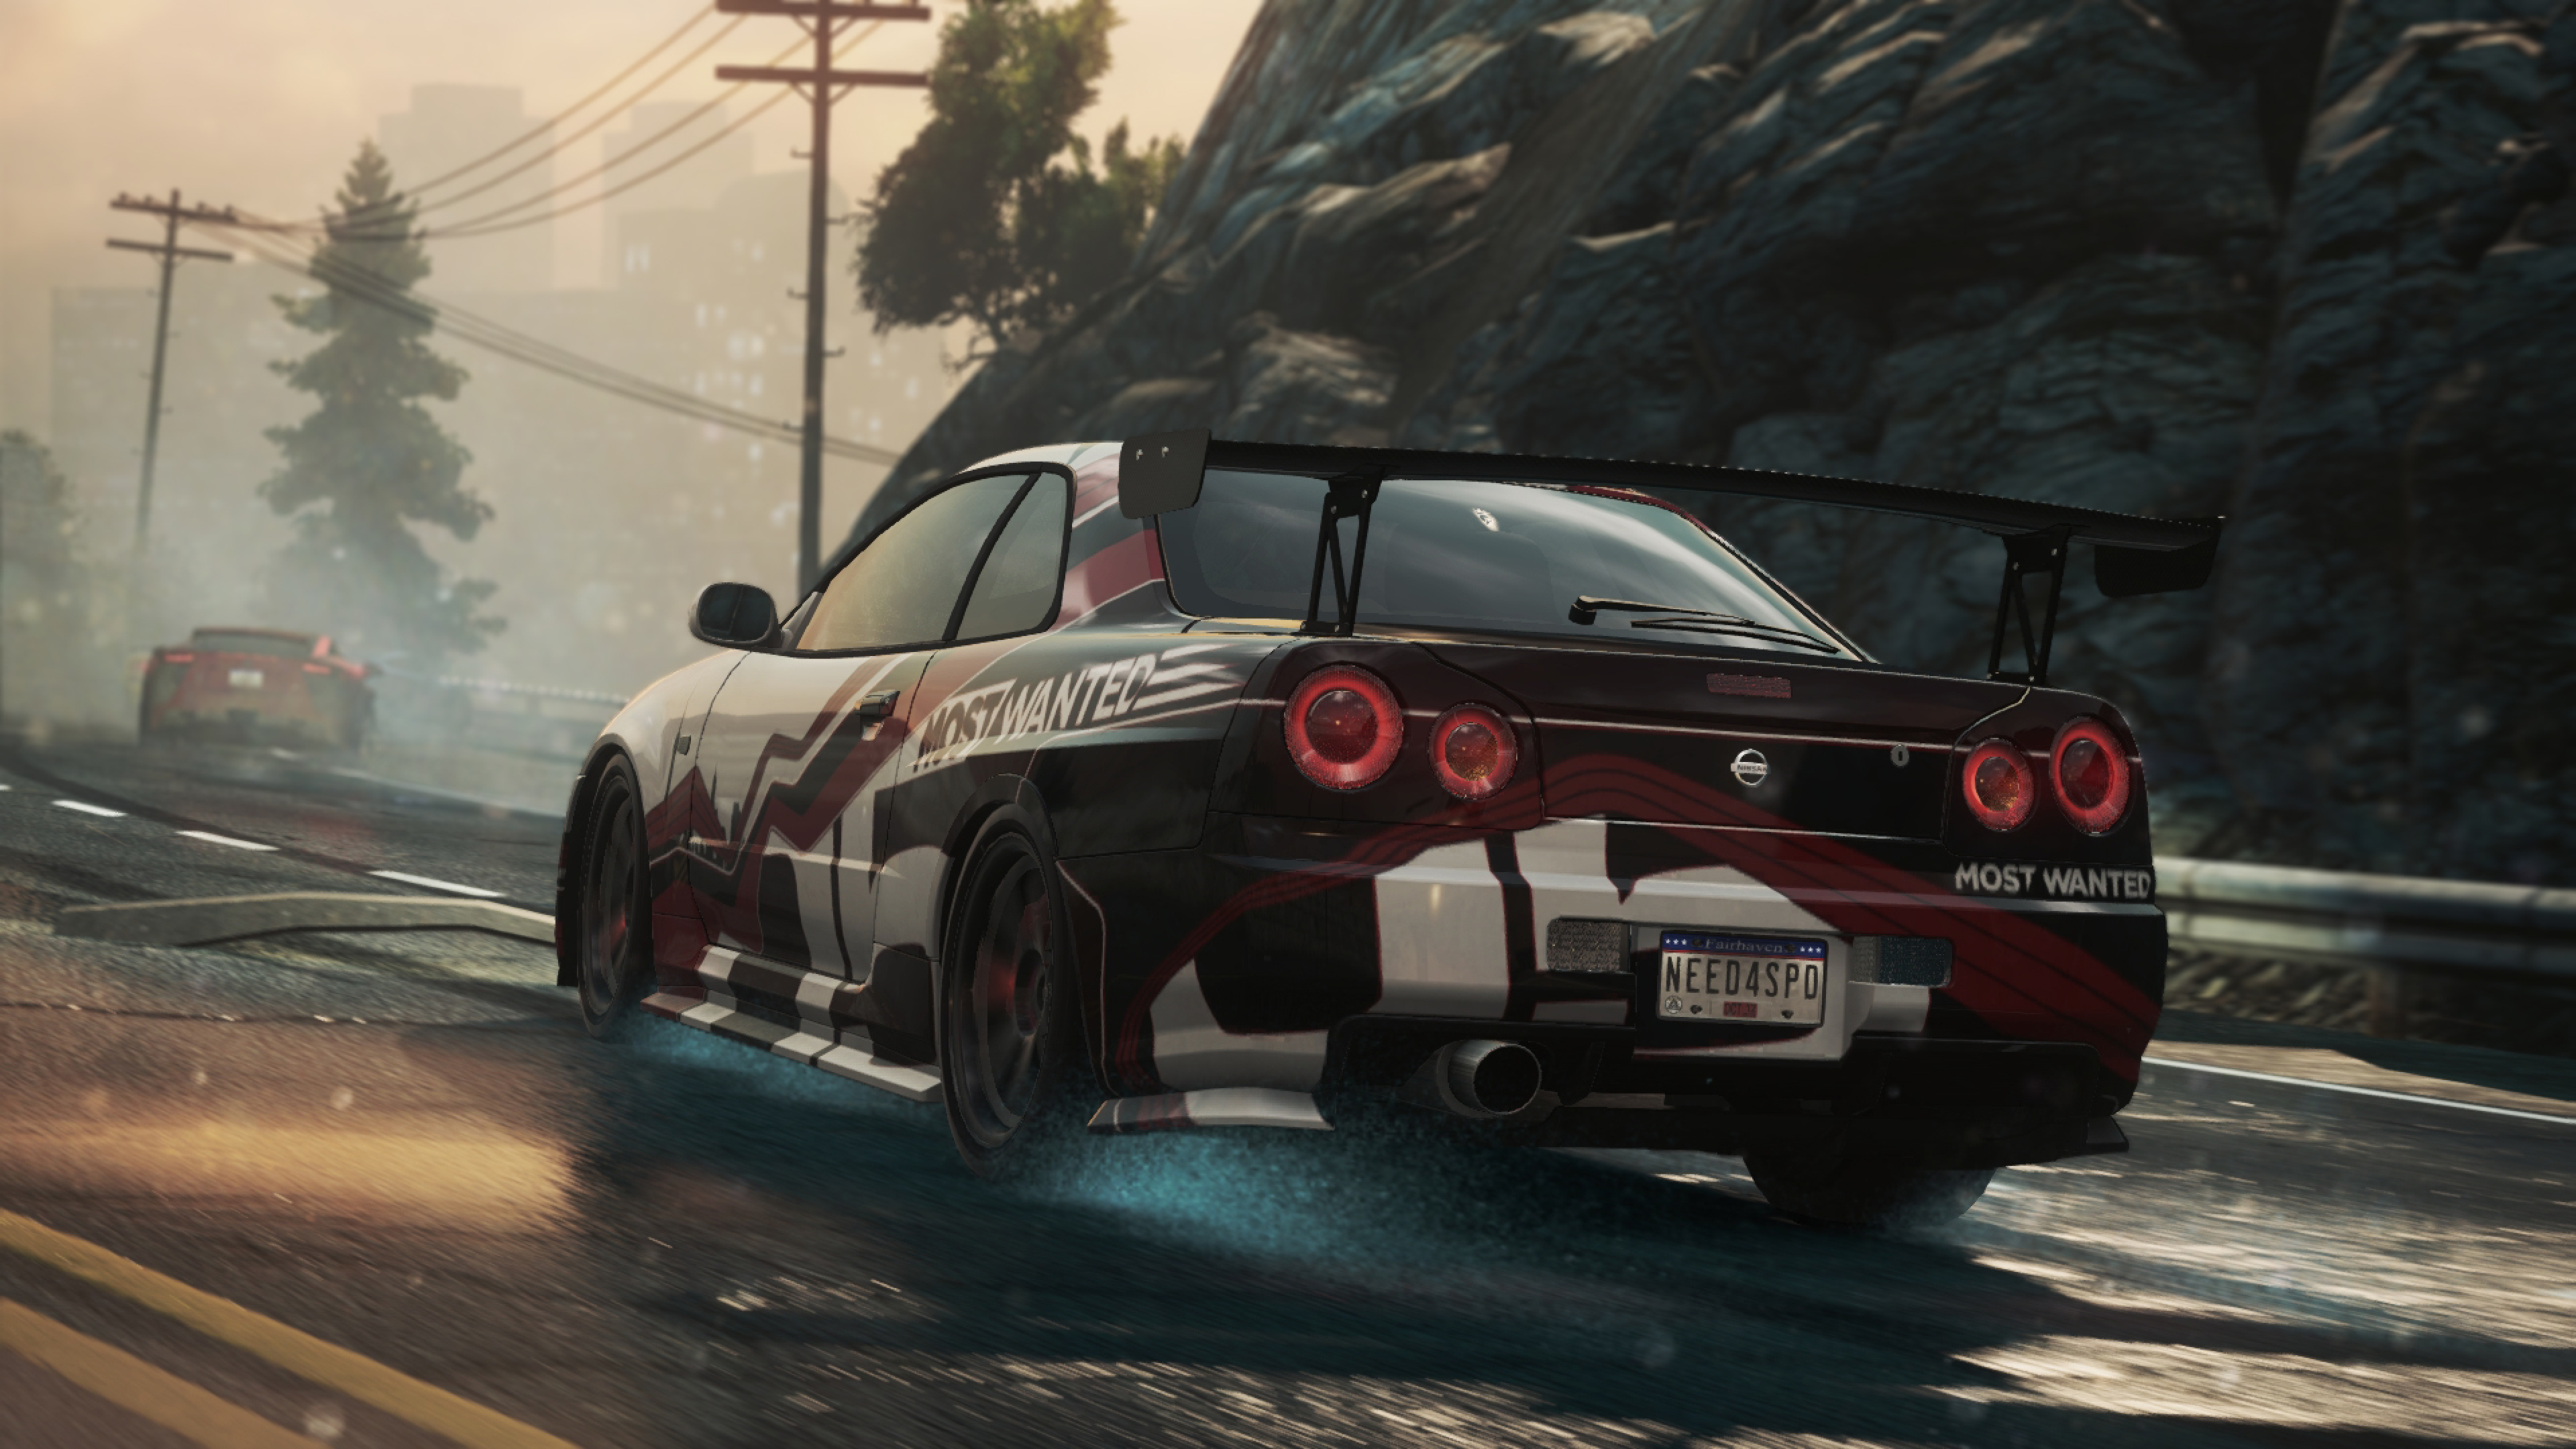 3840x2160 Need For Speed Nissan Skyline Gt R Most Wanted 4k Wallpaper Hd Games 4k Wallpapers Images Photos And Background